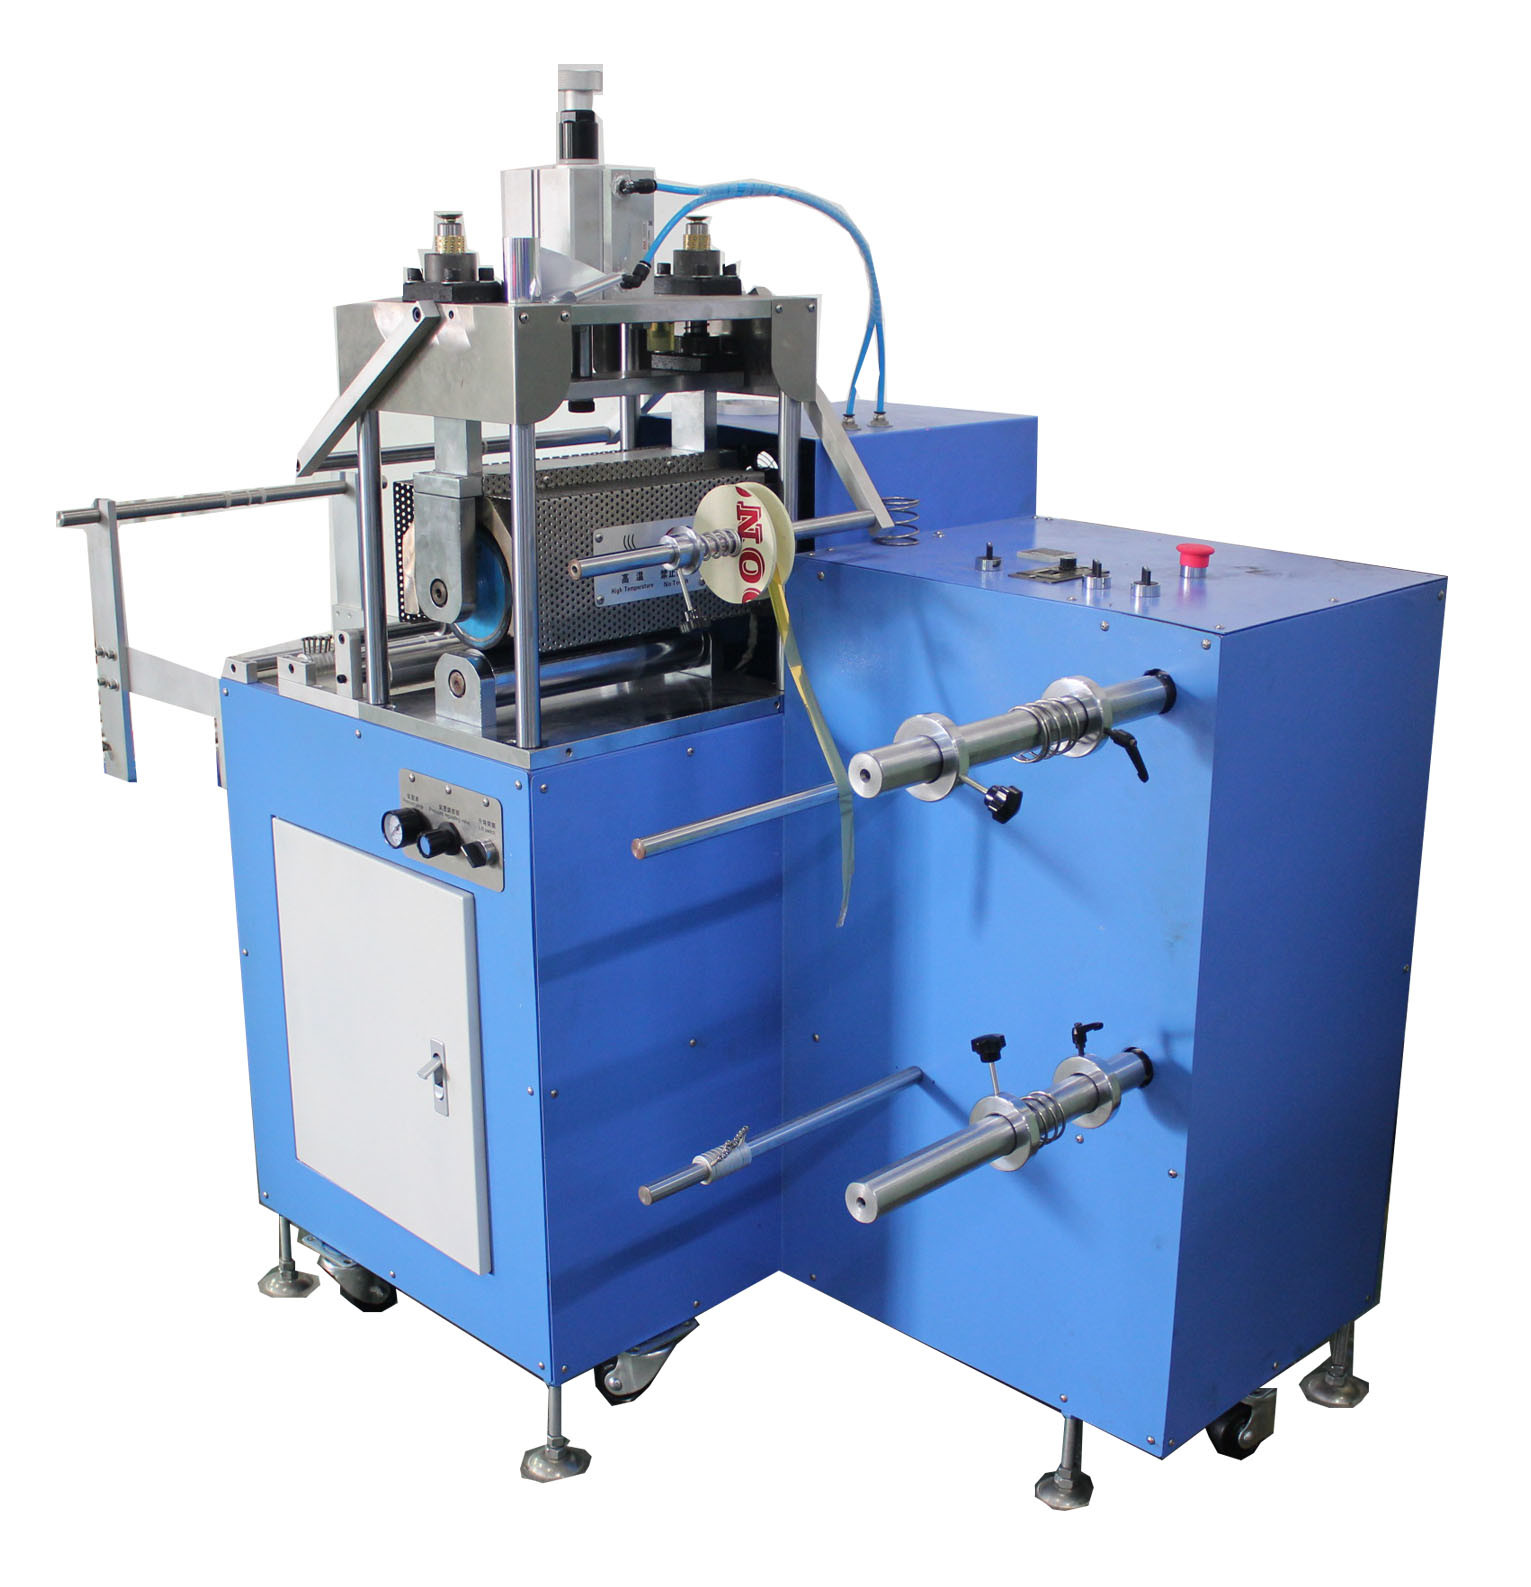 Hot Foil Stamping Machine for Gift Ribbons Dps-3000s-F